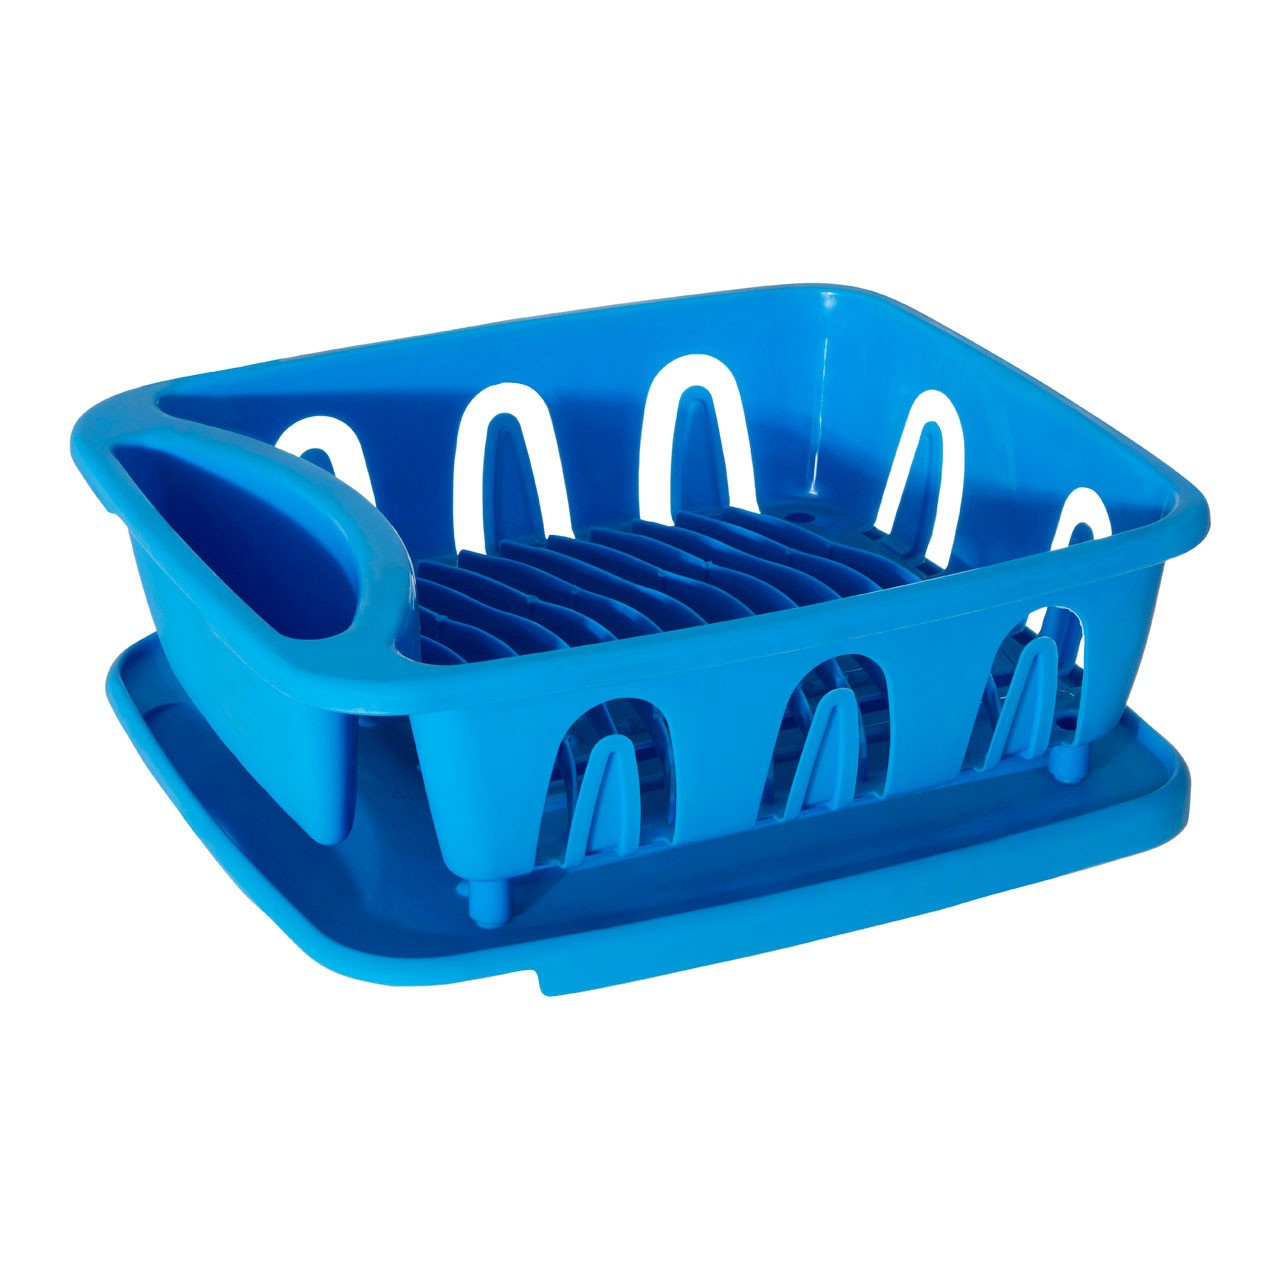 Dish Drainer, Blue Plastic, Removable Tray